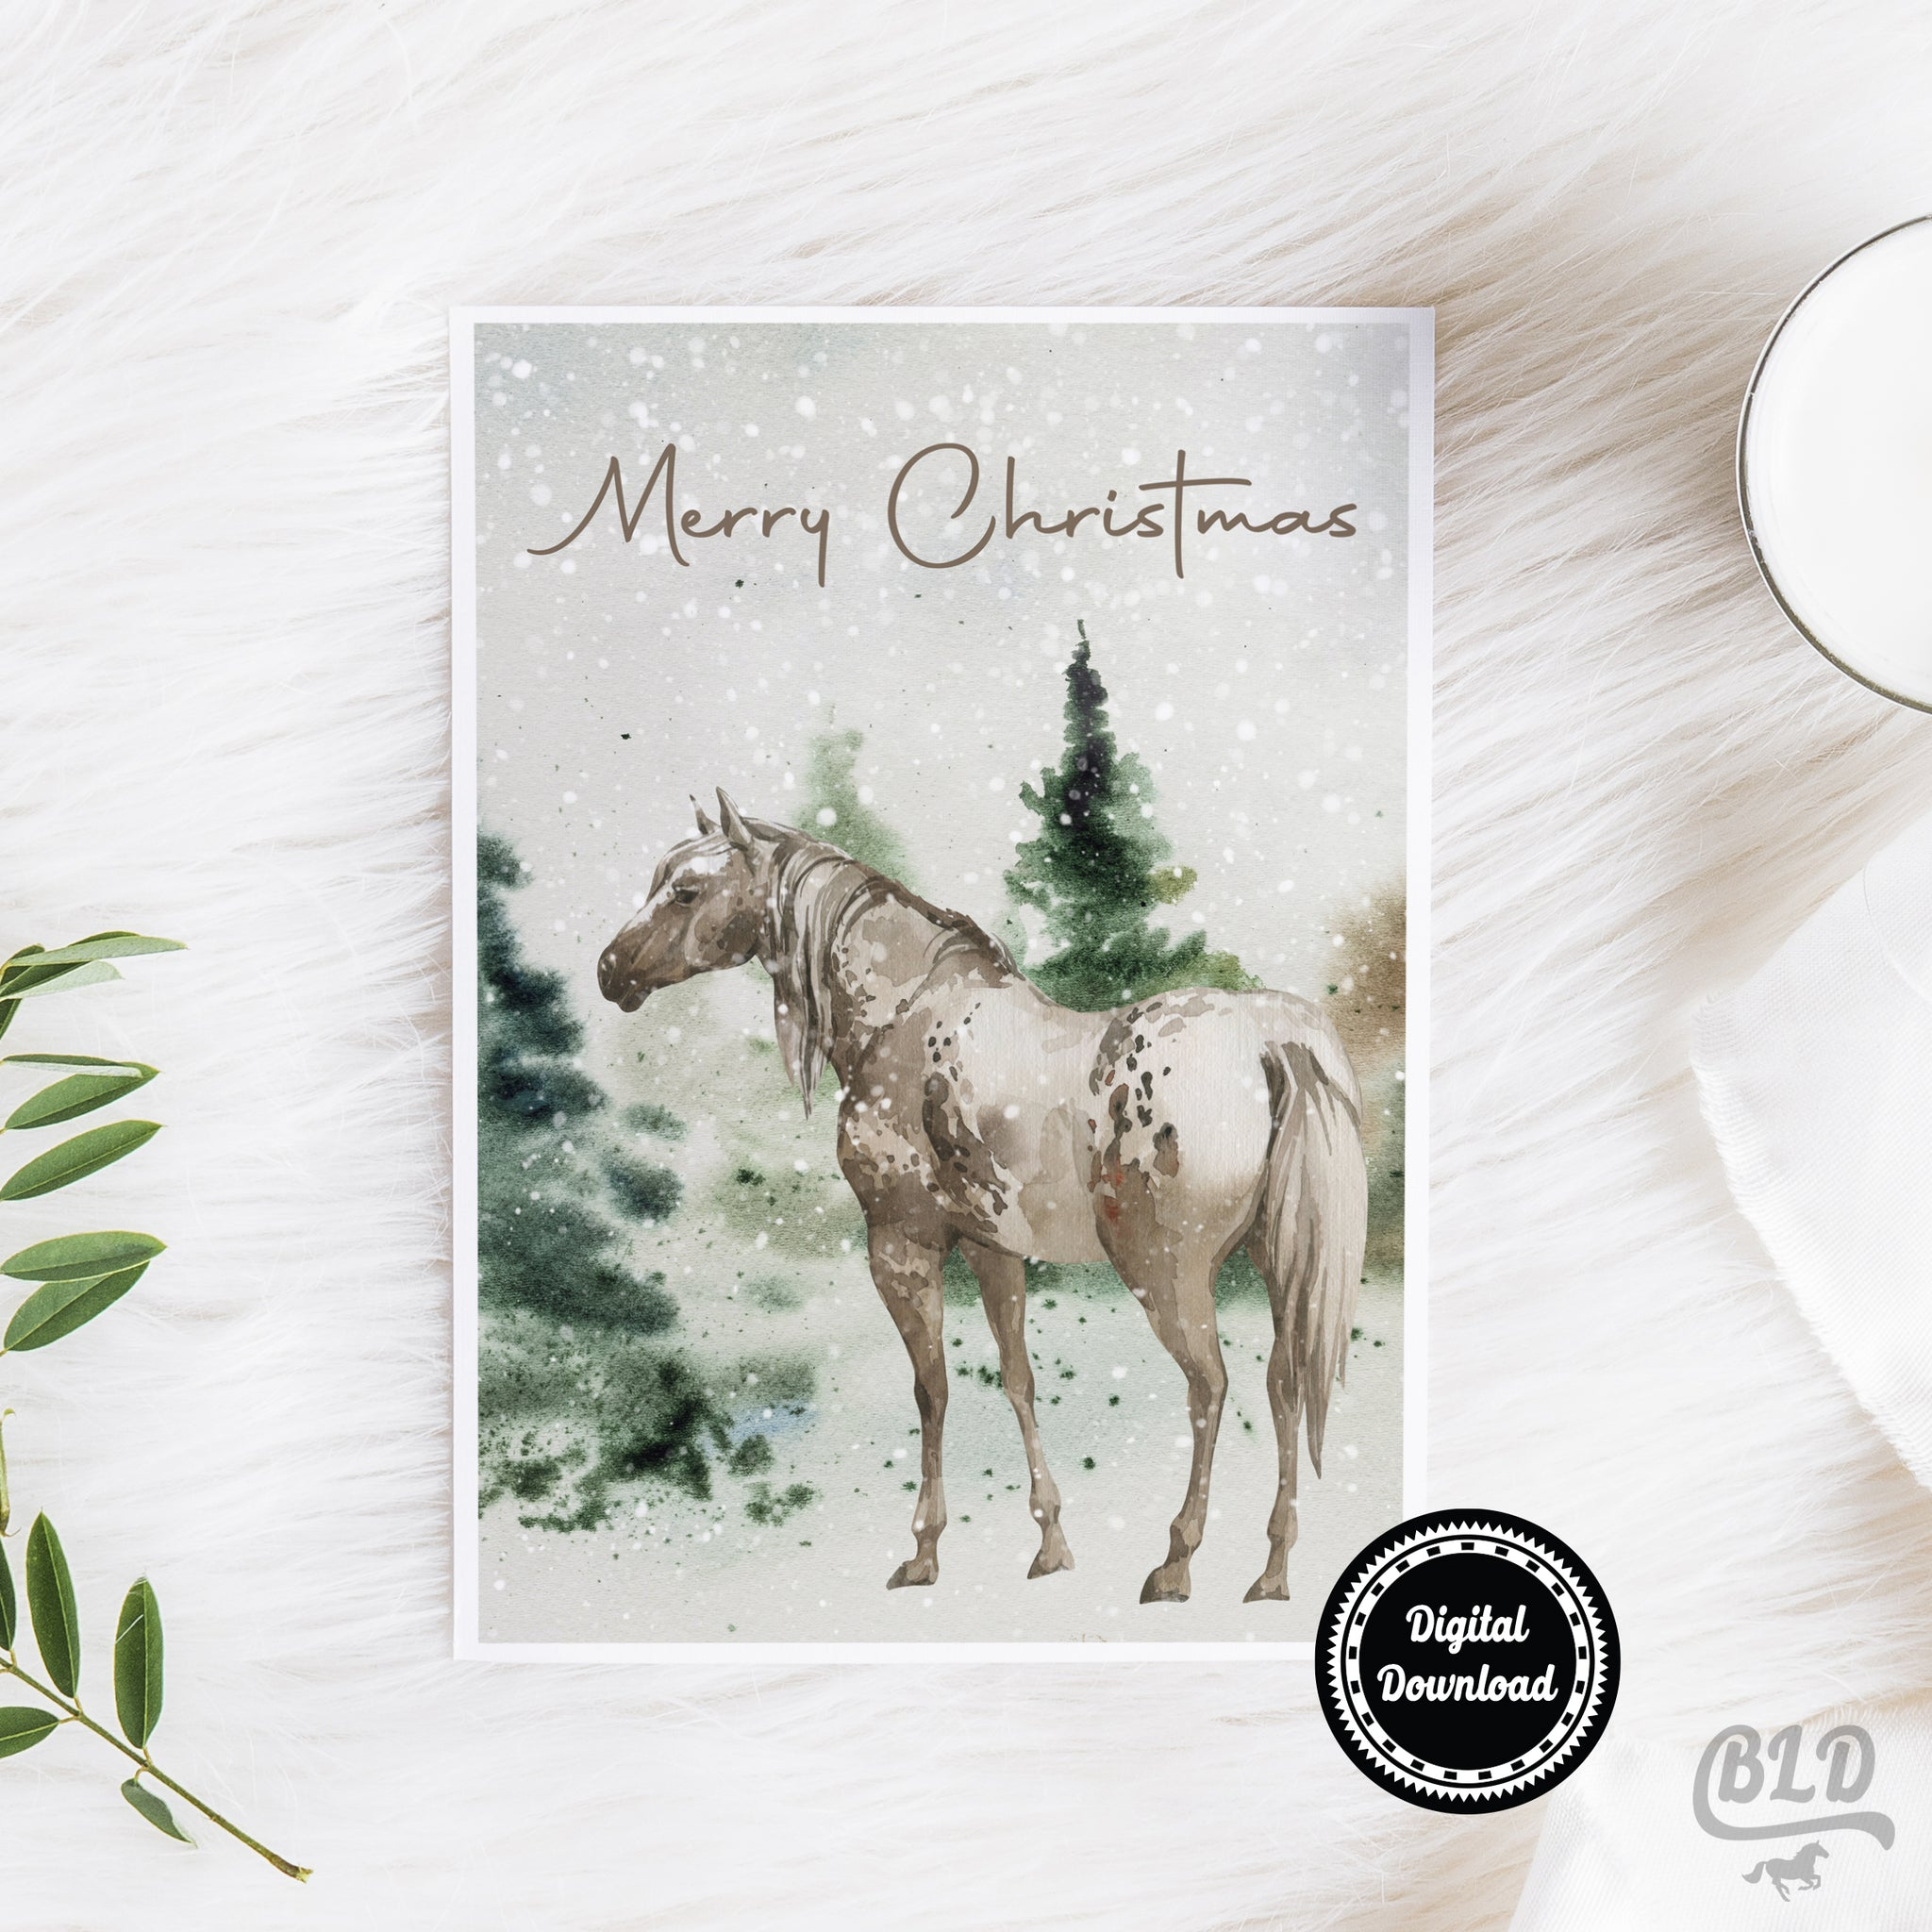 Holiday Cards - Digital Downloads